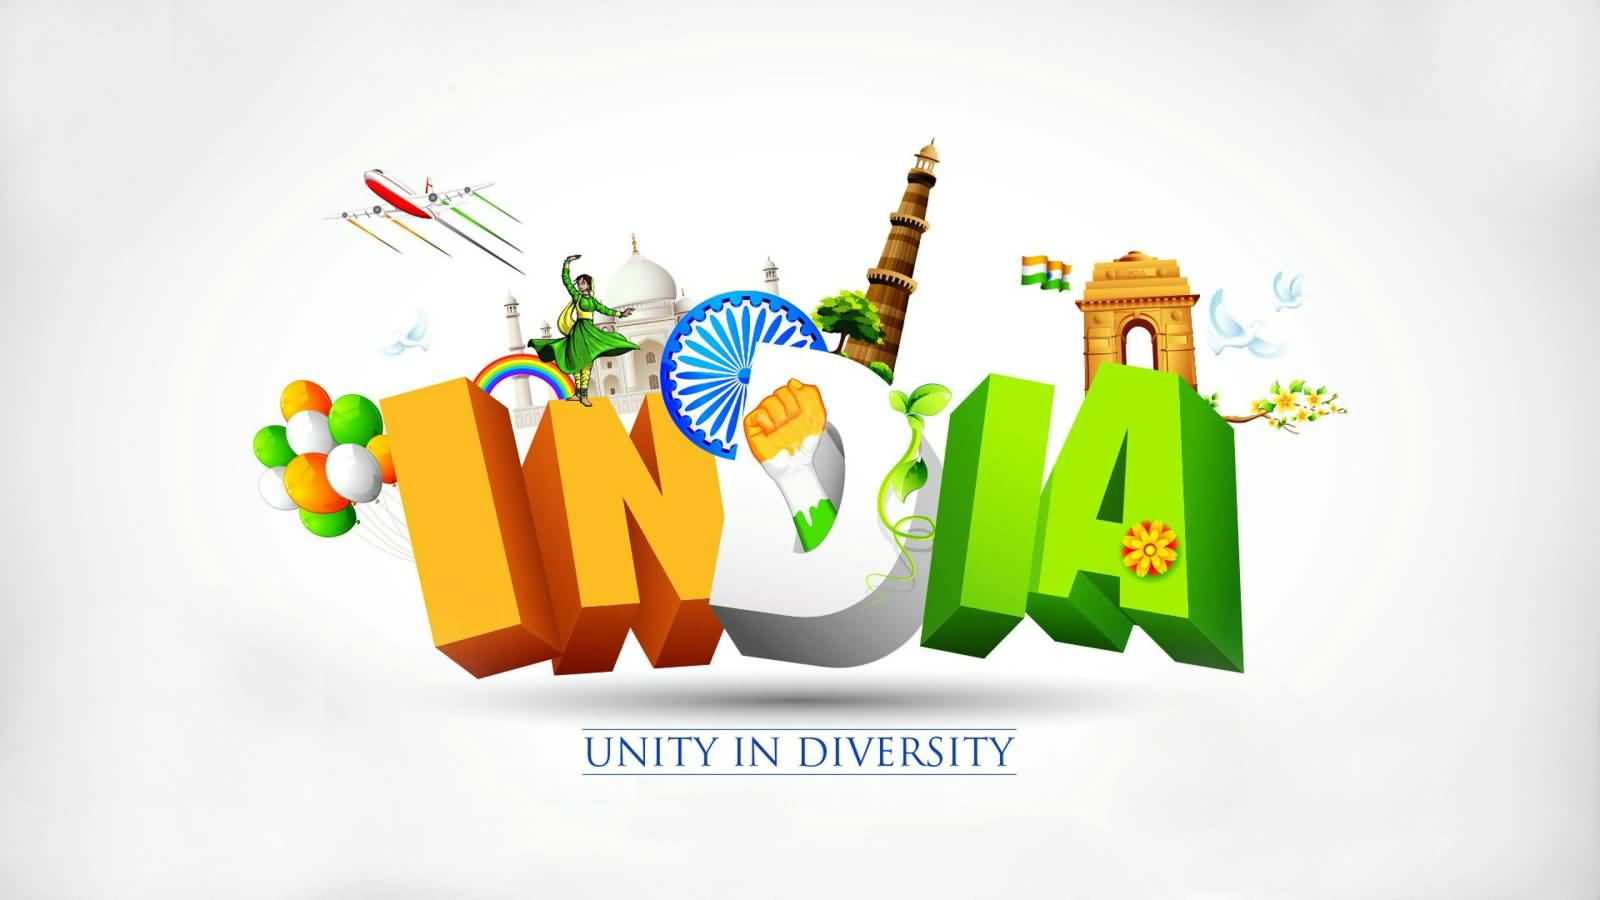 Bhakti Wallpaper 3d Hd Download India Is About Unity In Diversity Happy Republic Day